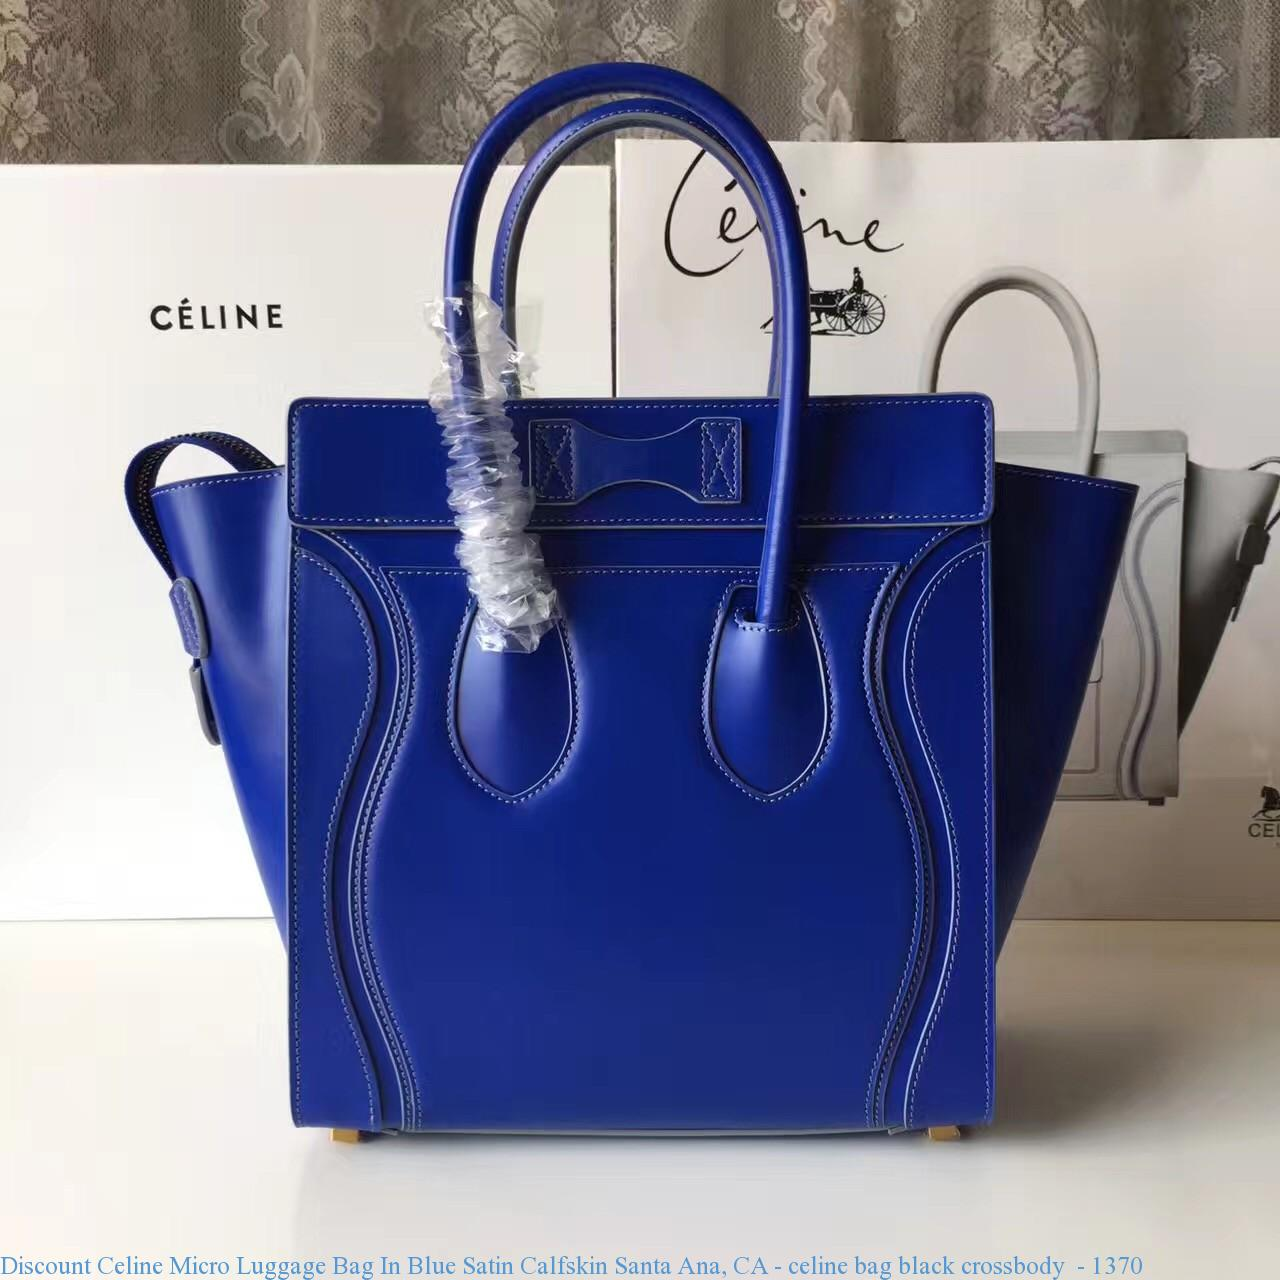 3f84a2797efc Discount Celine Micro Luggage Bag In Blue Satin Calfskin Santa Ana ...